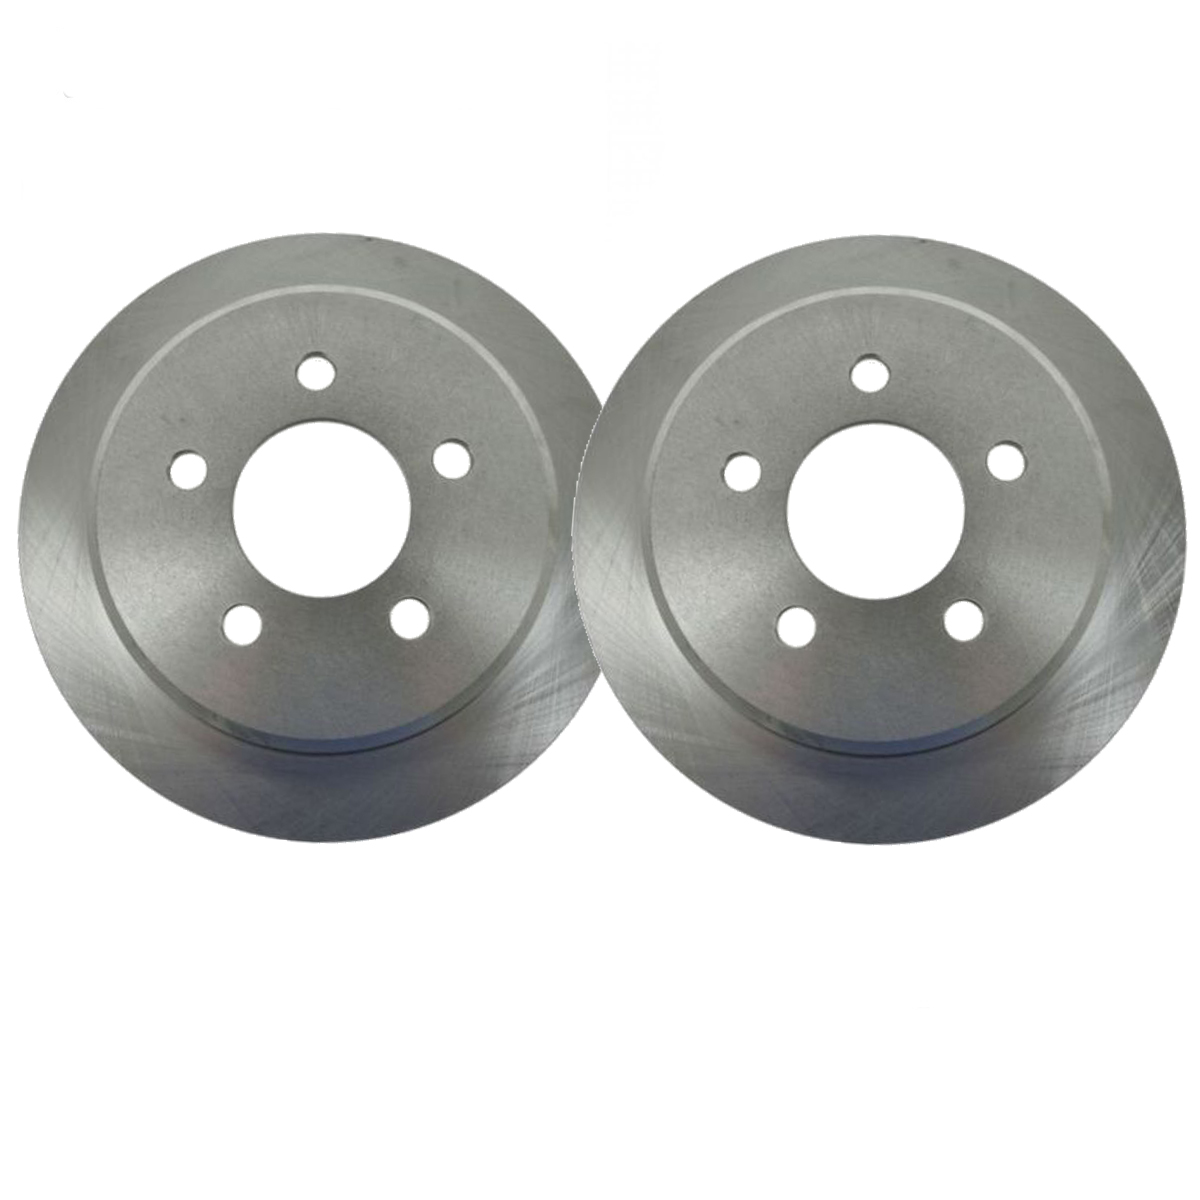 AWD REAR Disc Brake Rotor 96-05 Audi, Volkswagen - See Fitment